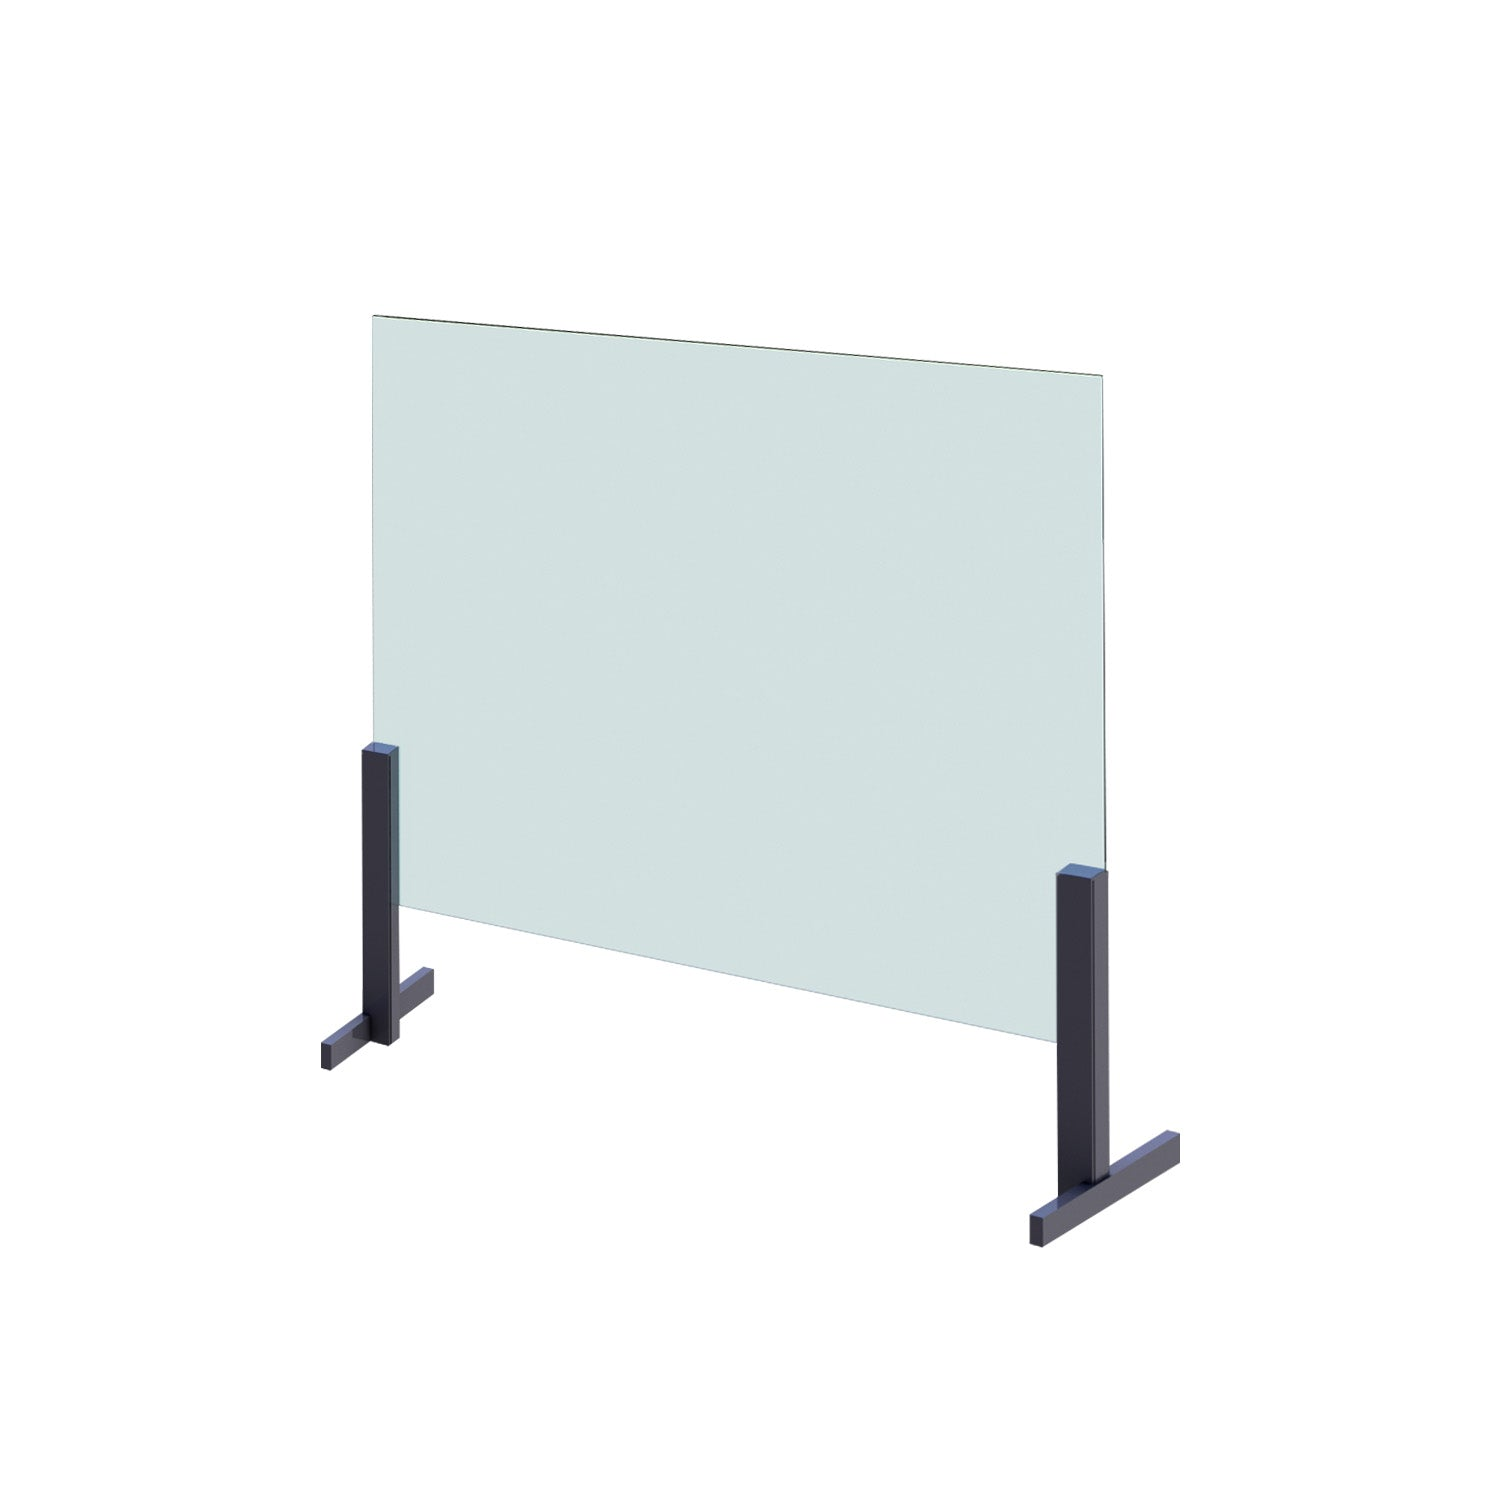 Desk-Top Hygiene Barrier (Safety Glass) with Pass-Through